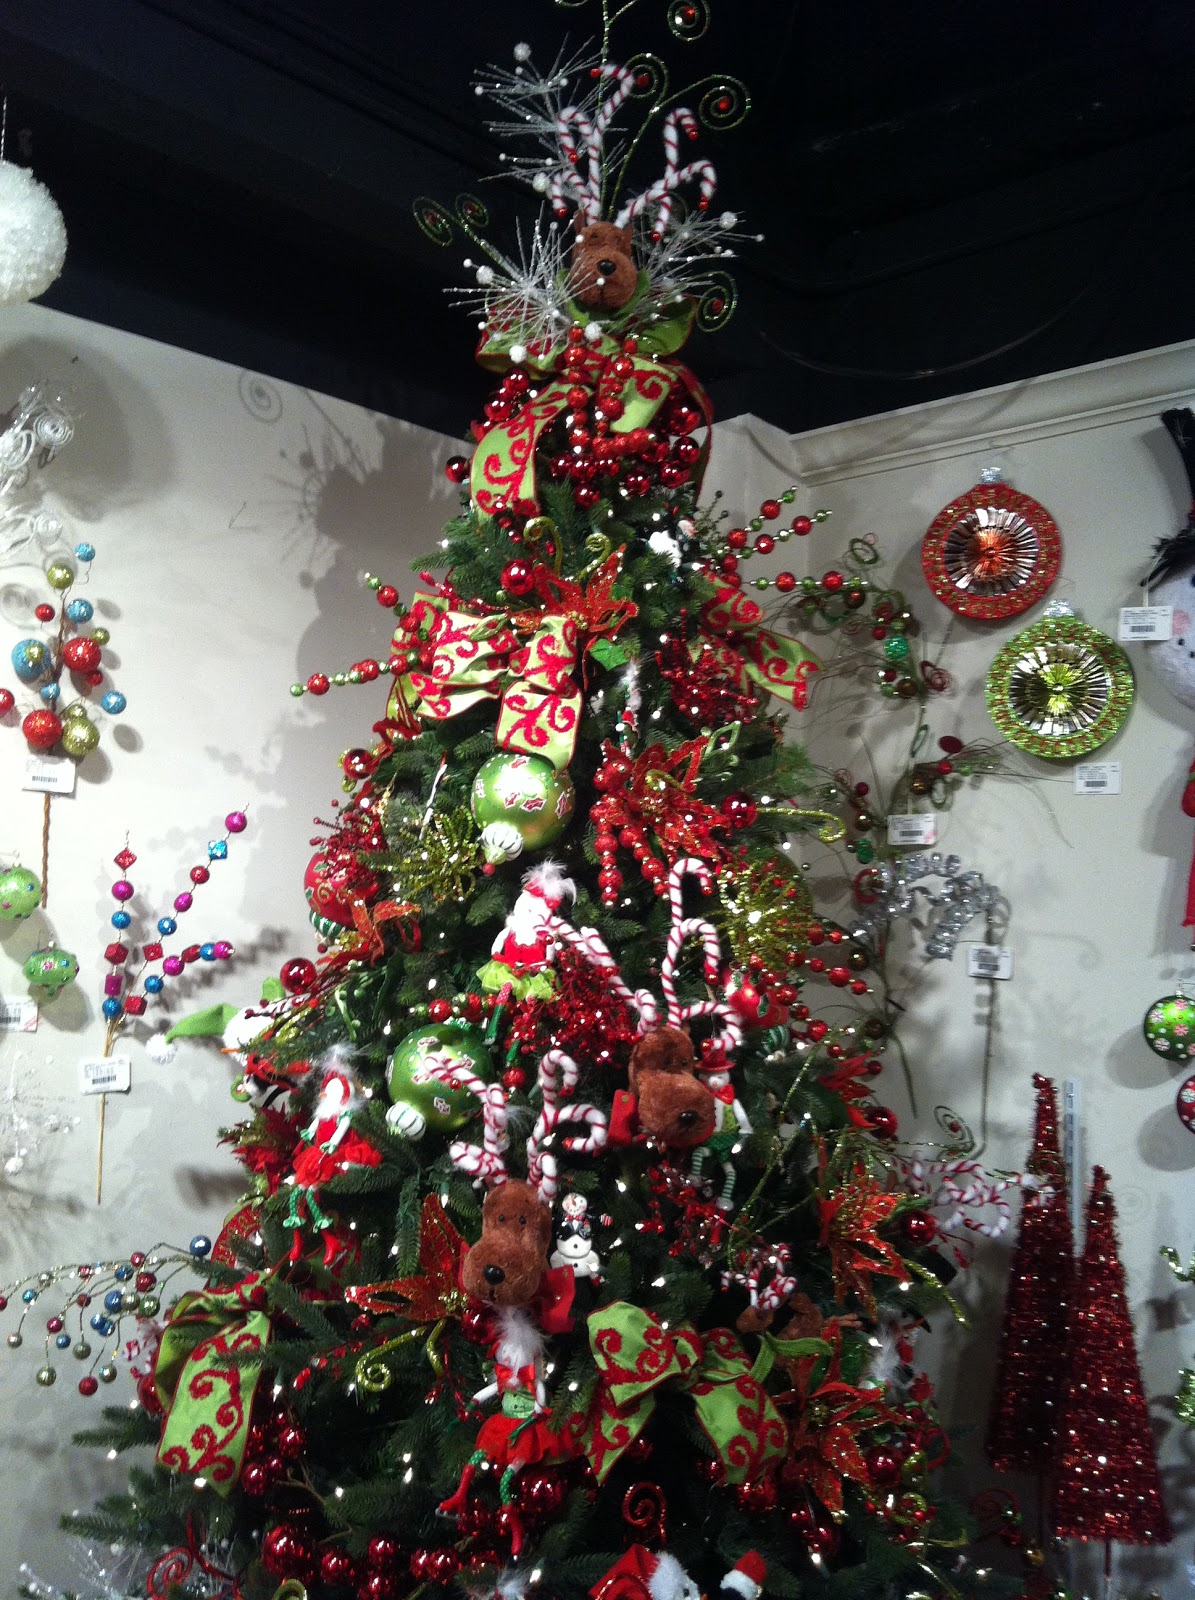 Kristen's Creations: Christmas Tree Decorating Ideas